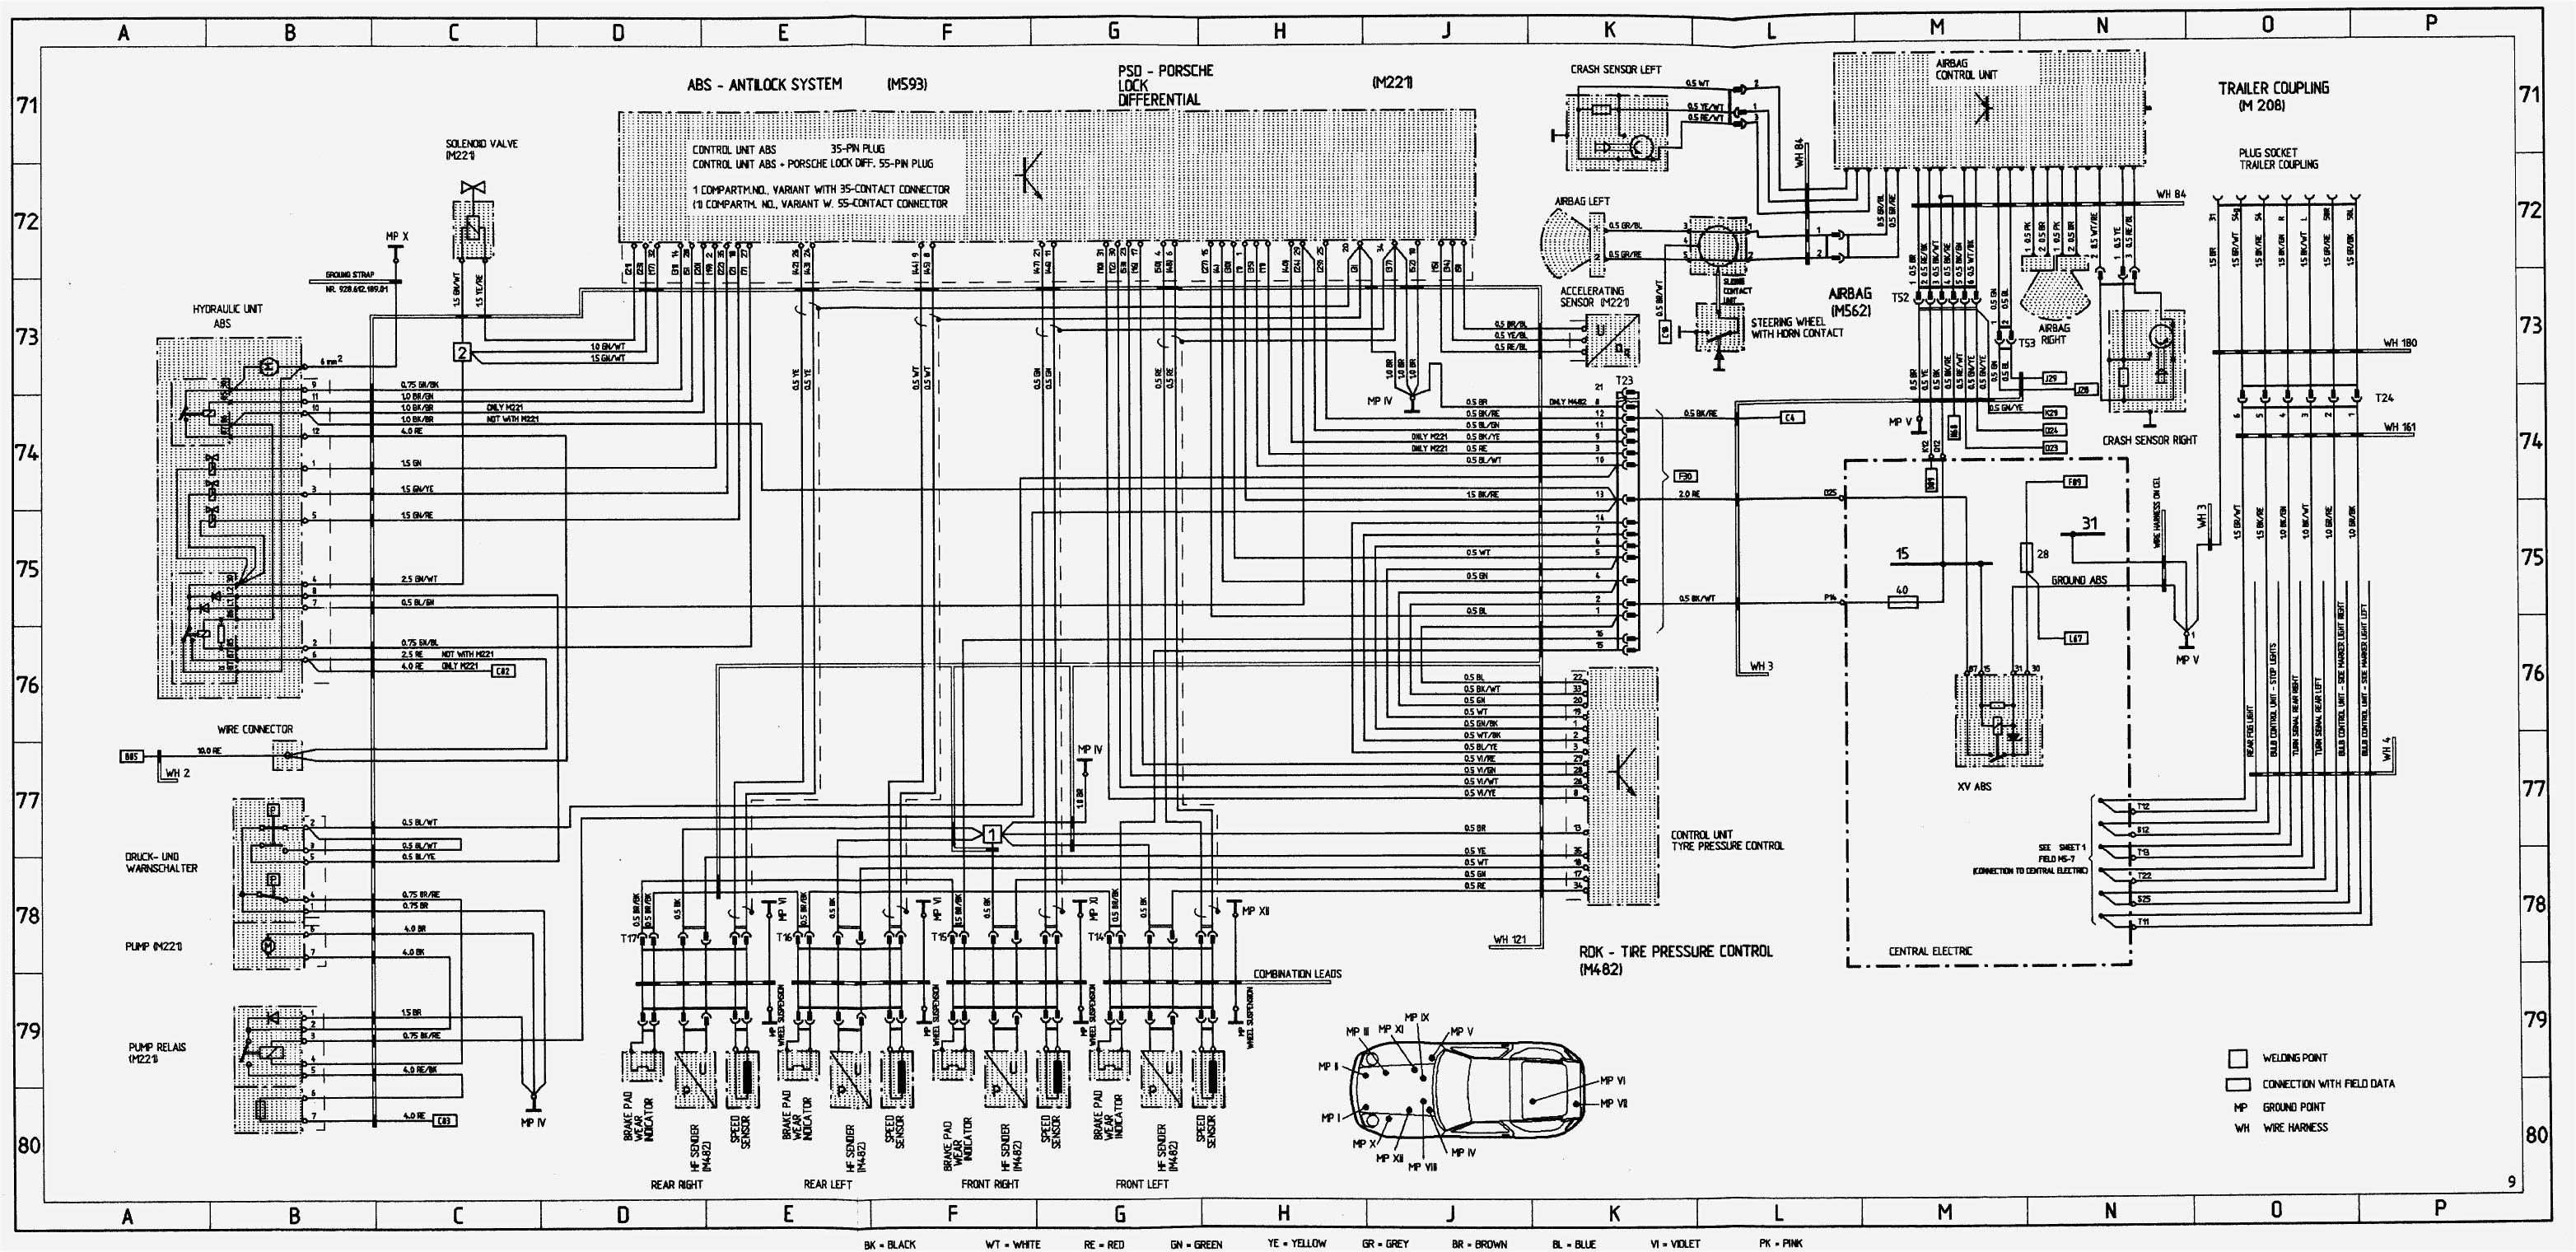 medium resolution of free bmw wiring diagrams wiring diagram toolbox bmw wiring diagram for scr tank 1996 bmw wiring